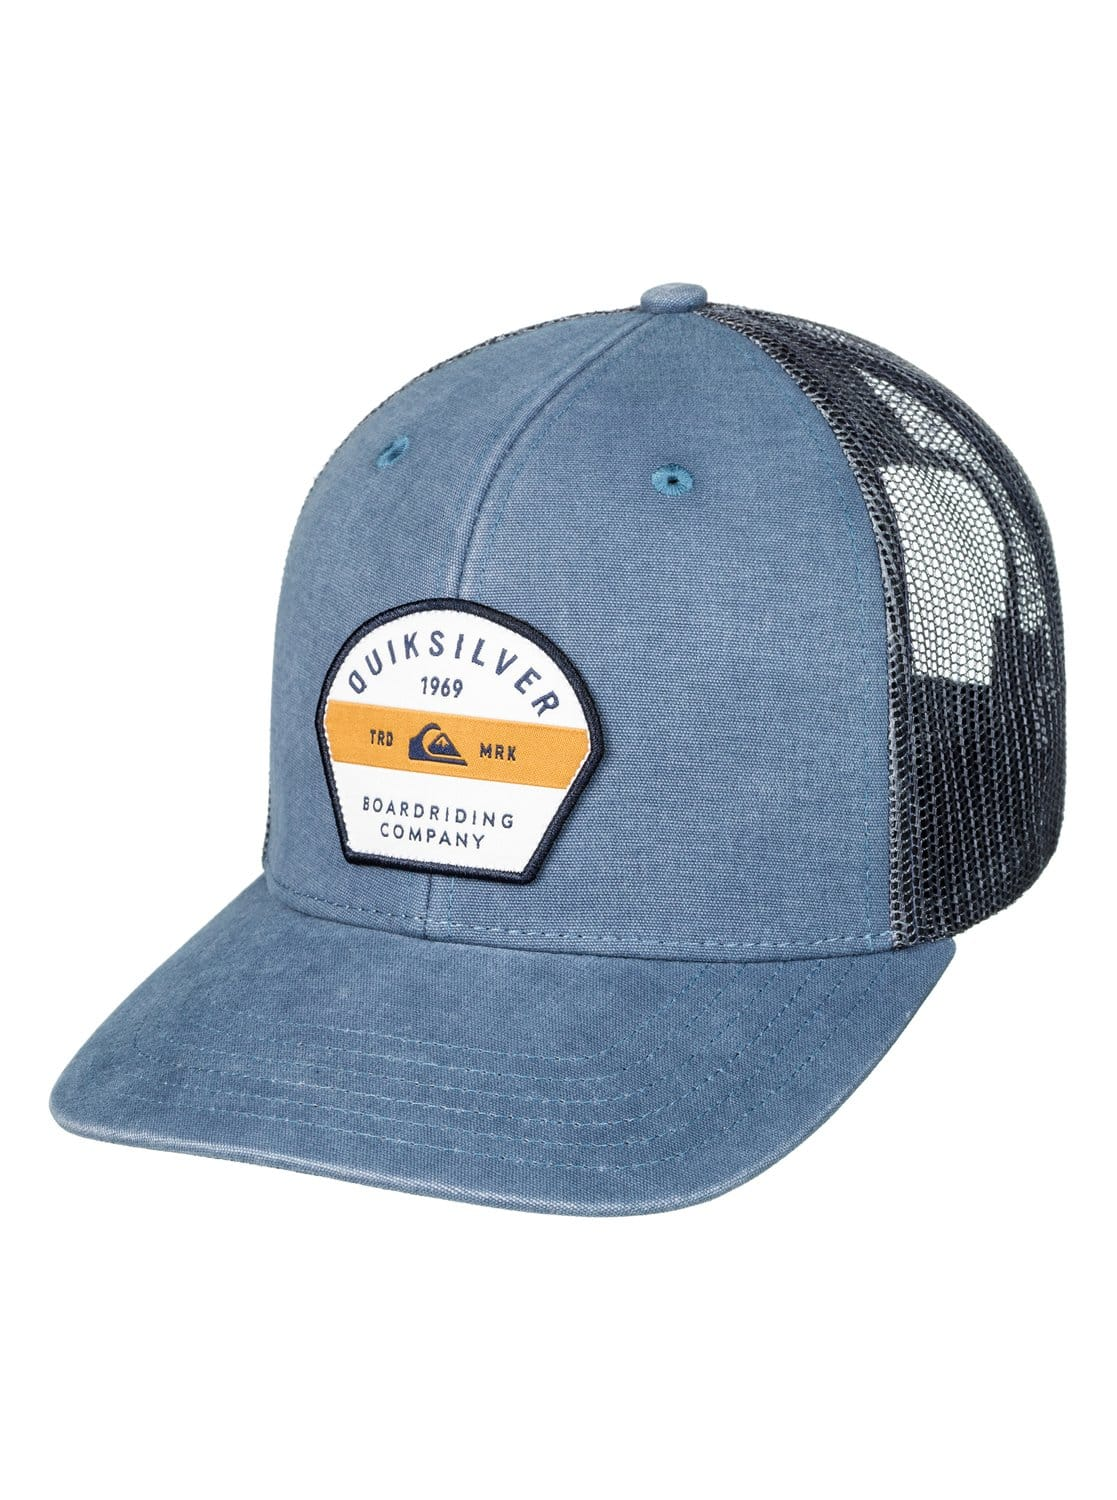 Quiksilver Hats from $9.60 with Free Shipping!